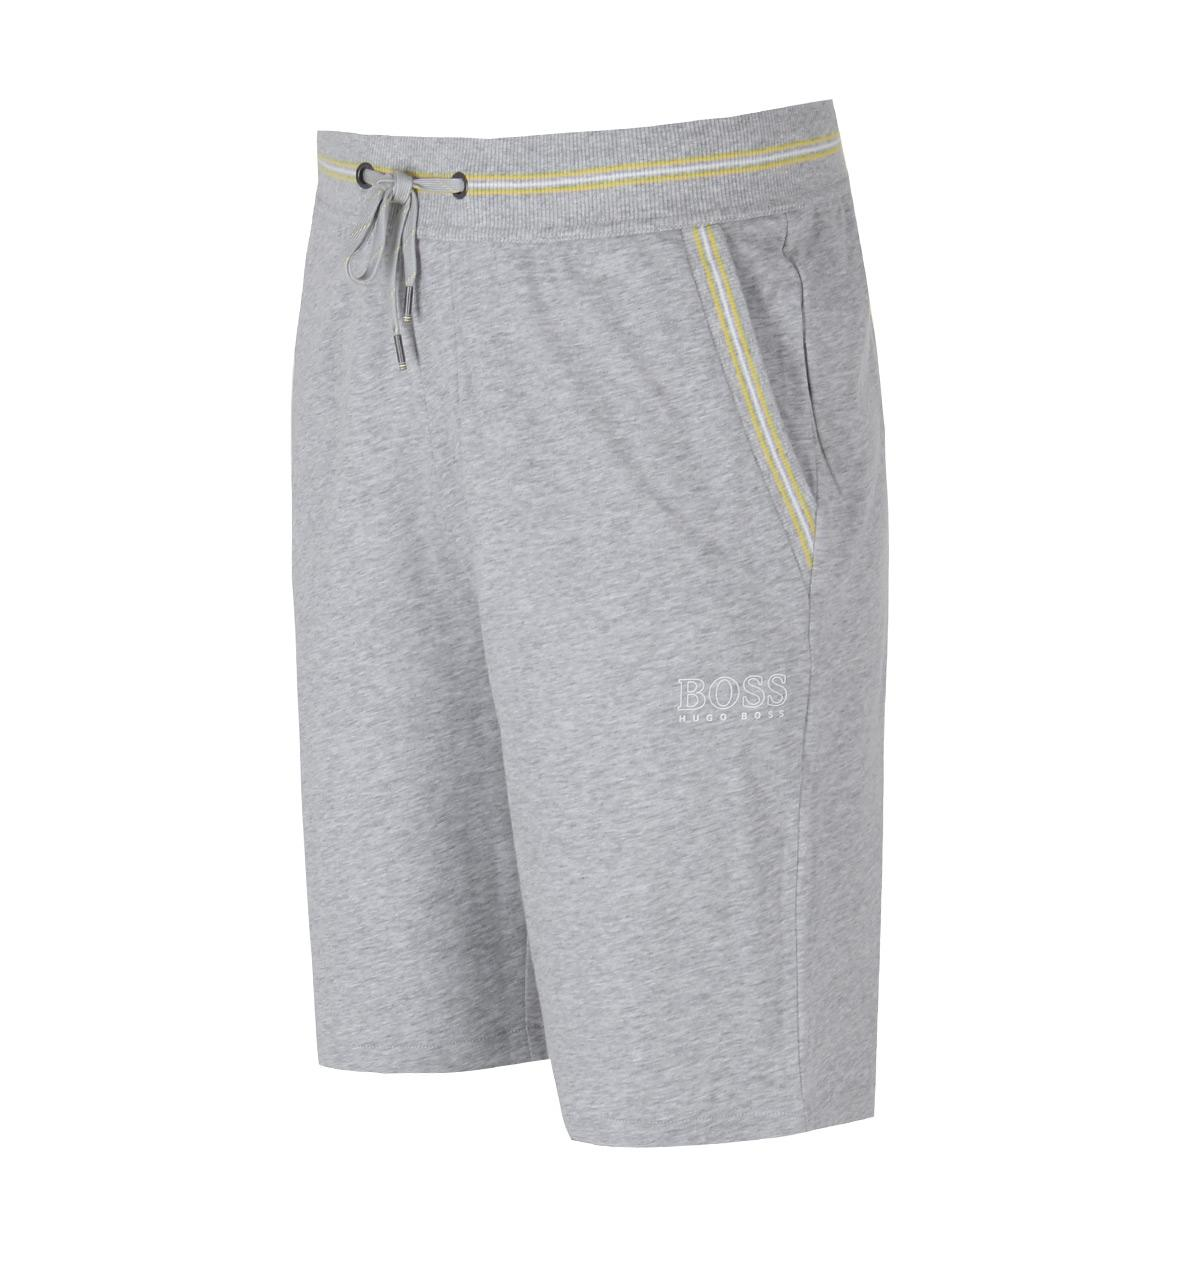 Lyst - Boss Black Grey Marl Authentic Sweat Shorts in Gray for Men d82437c786